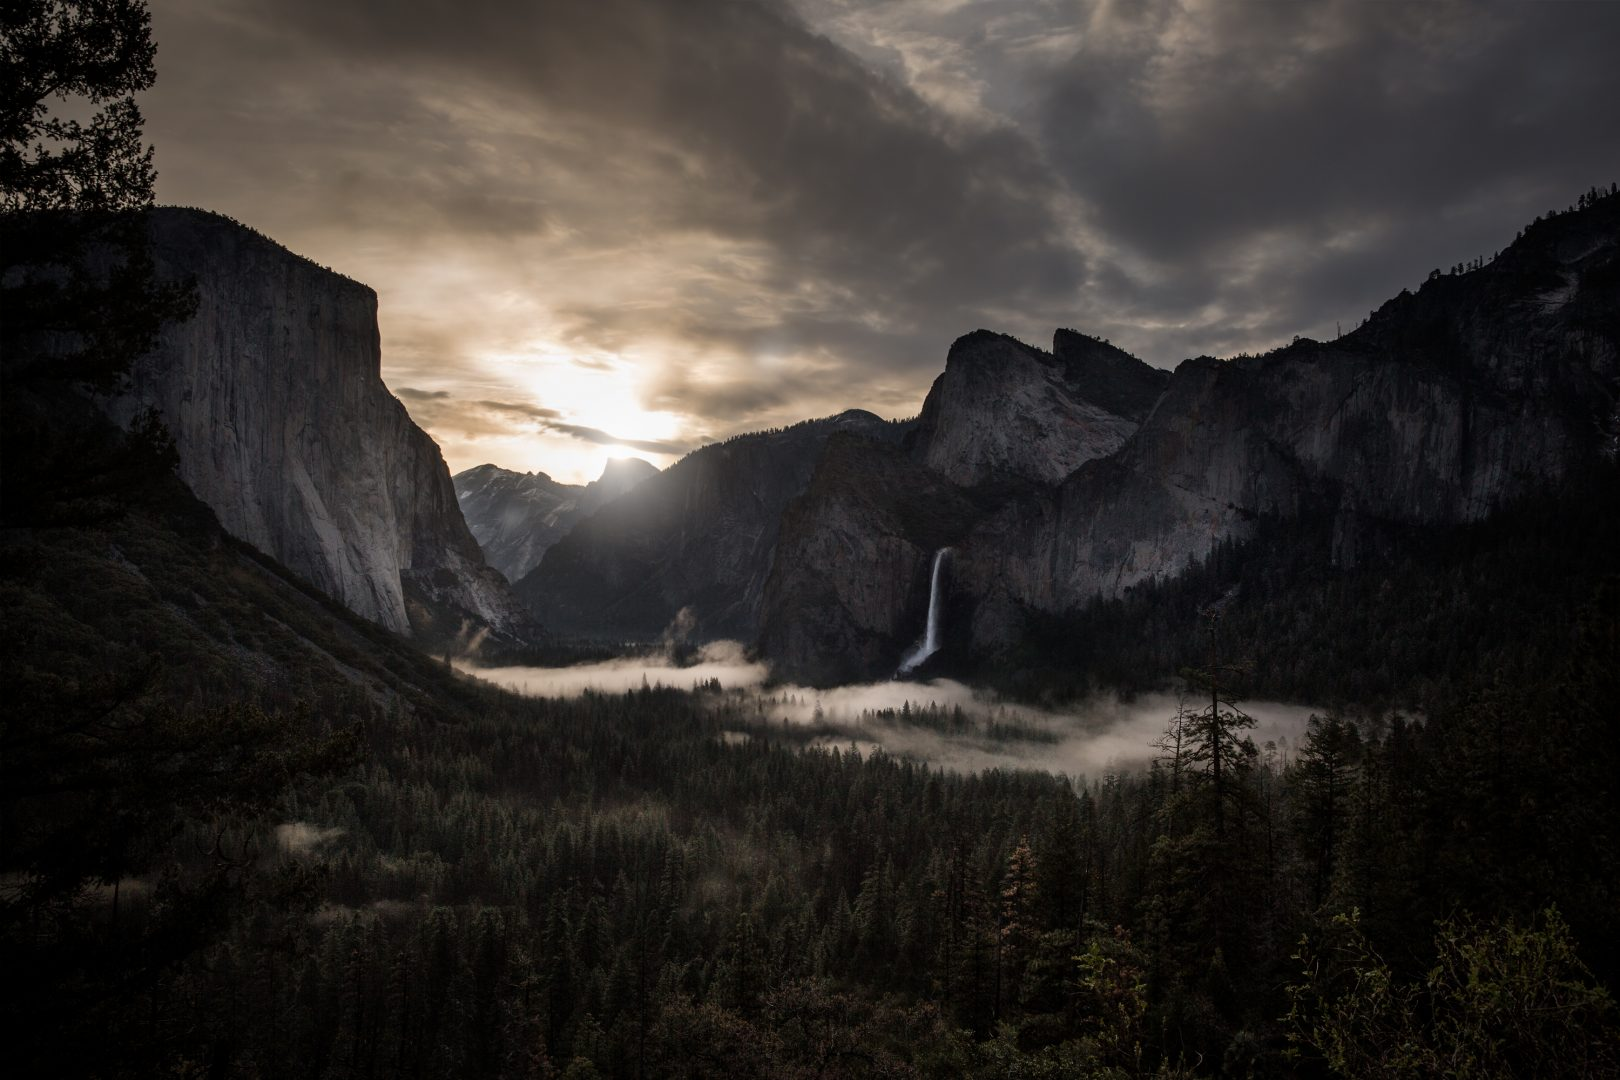 Sunrise, Yosemite